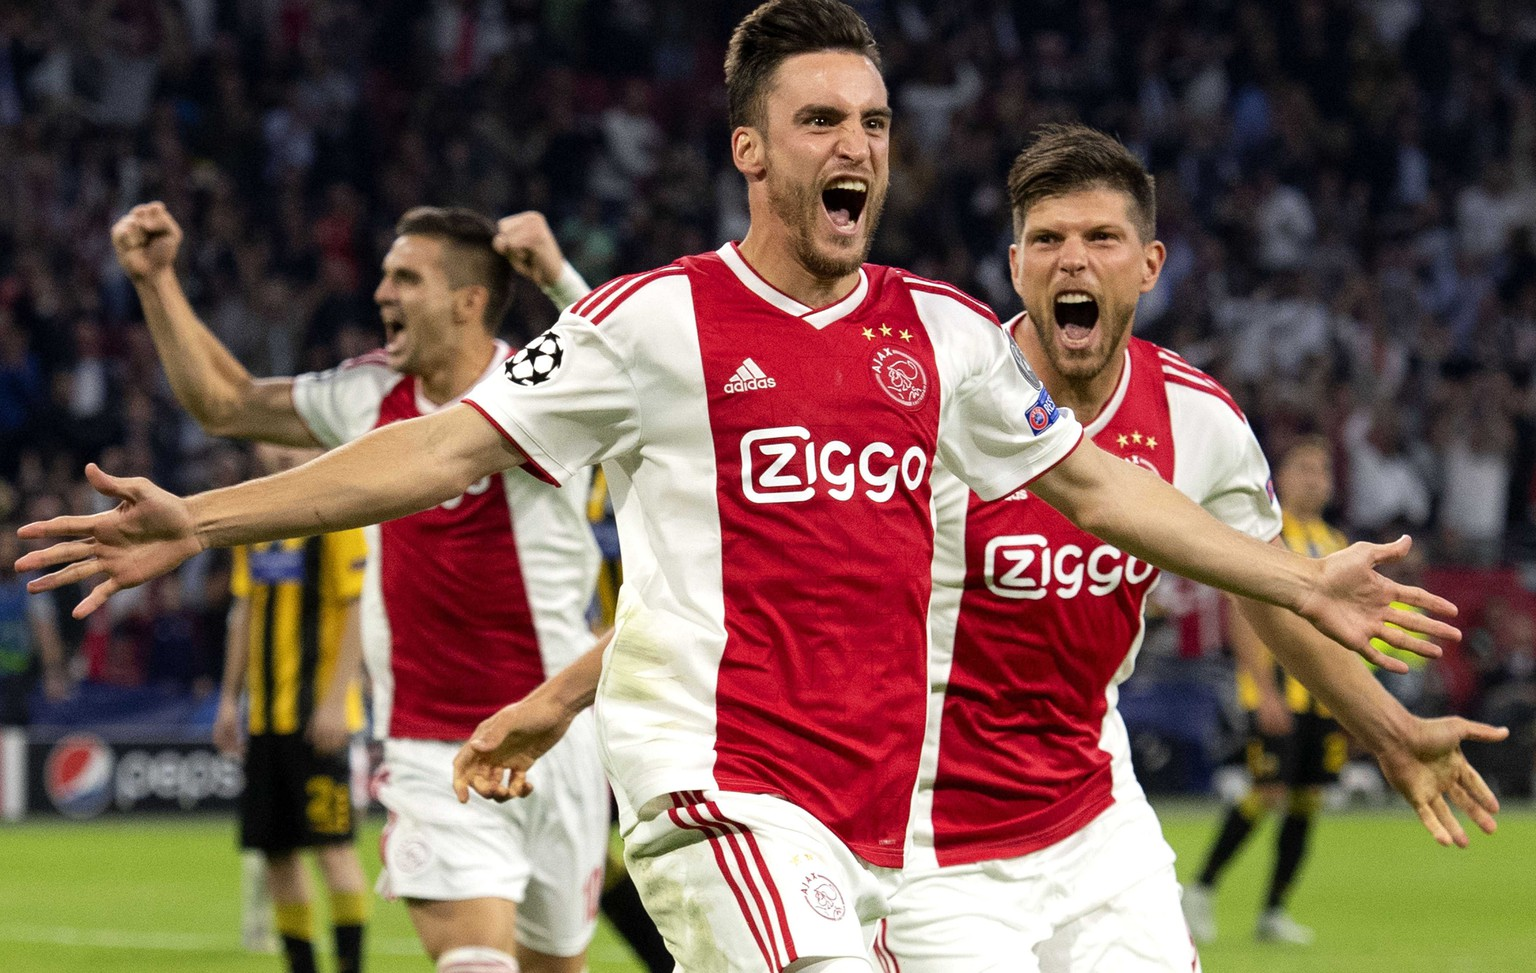 epa07032831 Nicolas Tagliafico (L) of Ajax celebrates with teammate Klaas Jan Huntelaar after scoring the 1-0 during the UEFA Champions League group E soccer match between Ajax Amsterdam and AEK Athens at Johan Cruijff Arena in Amsterdam, Netherlands, 19 September 2018.  EPA/OLAF KRAAK